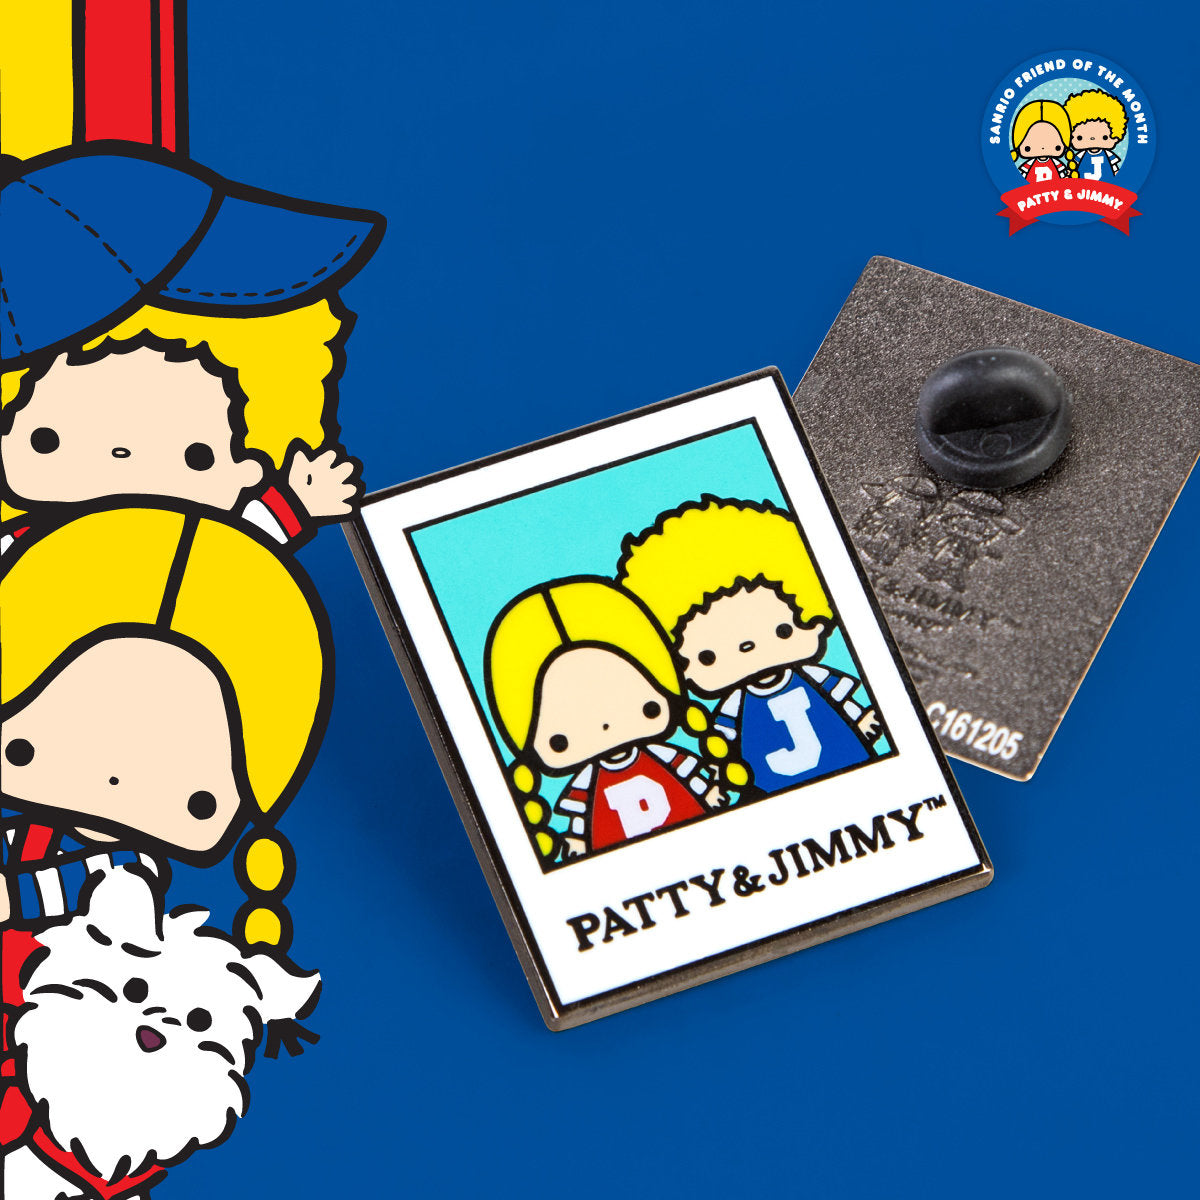 Sanrio Friend of the Month Patty & Jimmy Collectible Pin